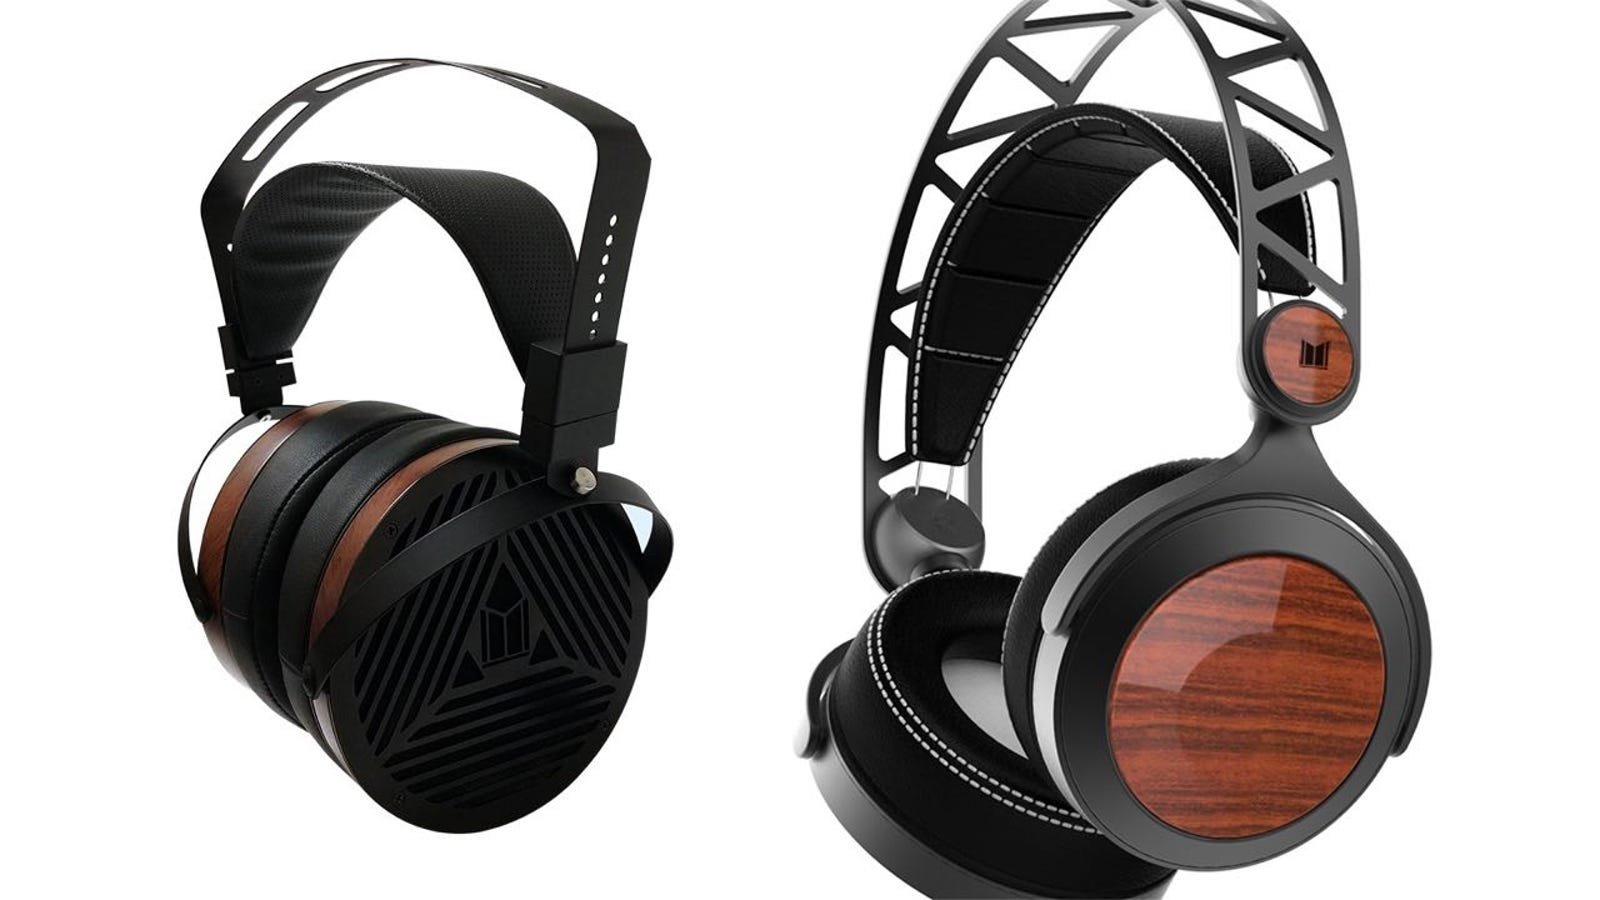 vmoda headphone - Monoprice's New Line of Super Cheap Audio Gear Packs in Absurdly High-End Tech